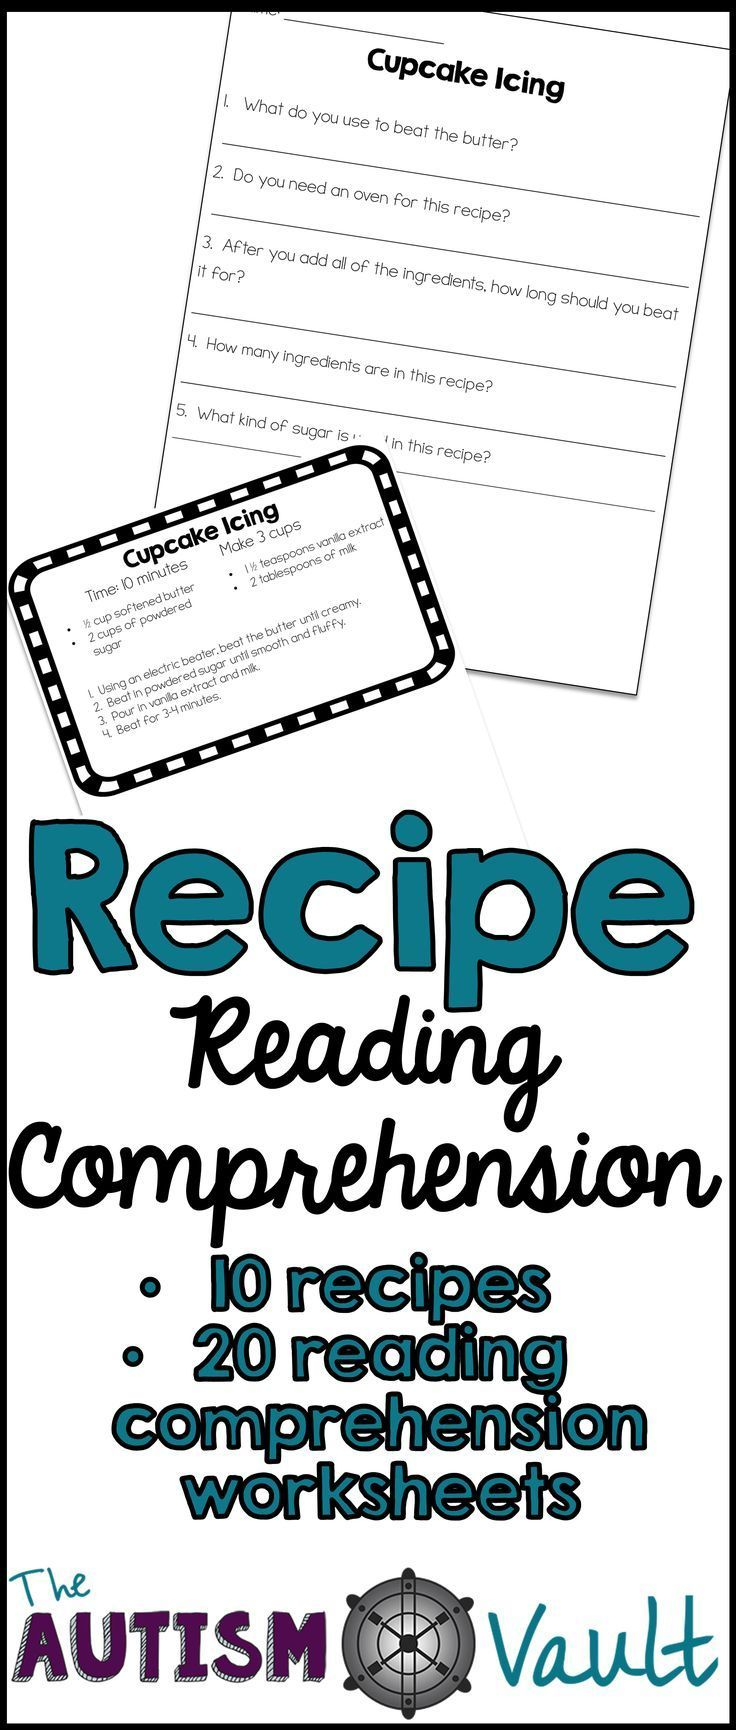 worksheet Functional Reading Comprehension Worksheets recipe reading comprehension life skills and functional literacy pratice with your special education students comes 10 recipes